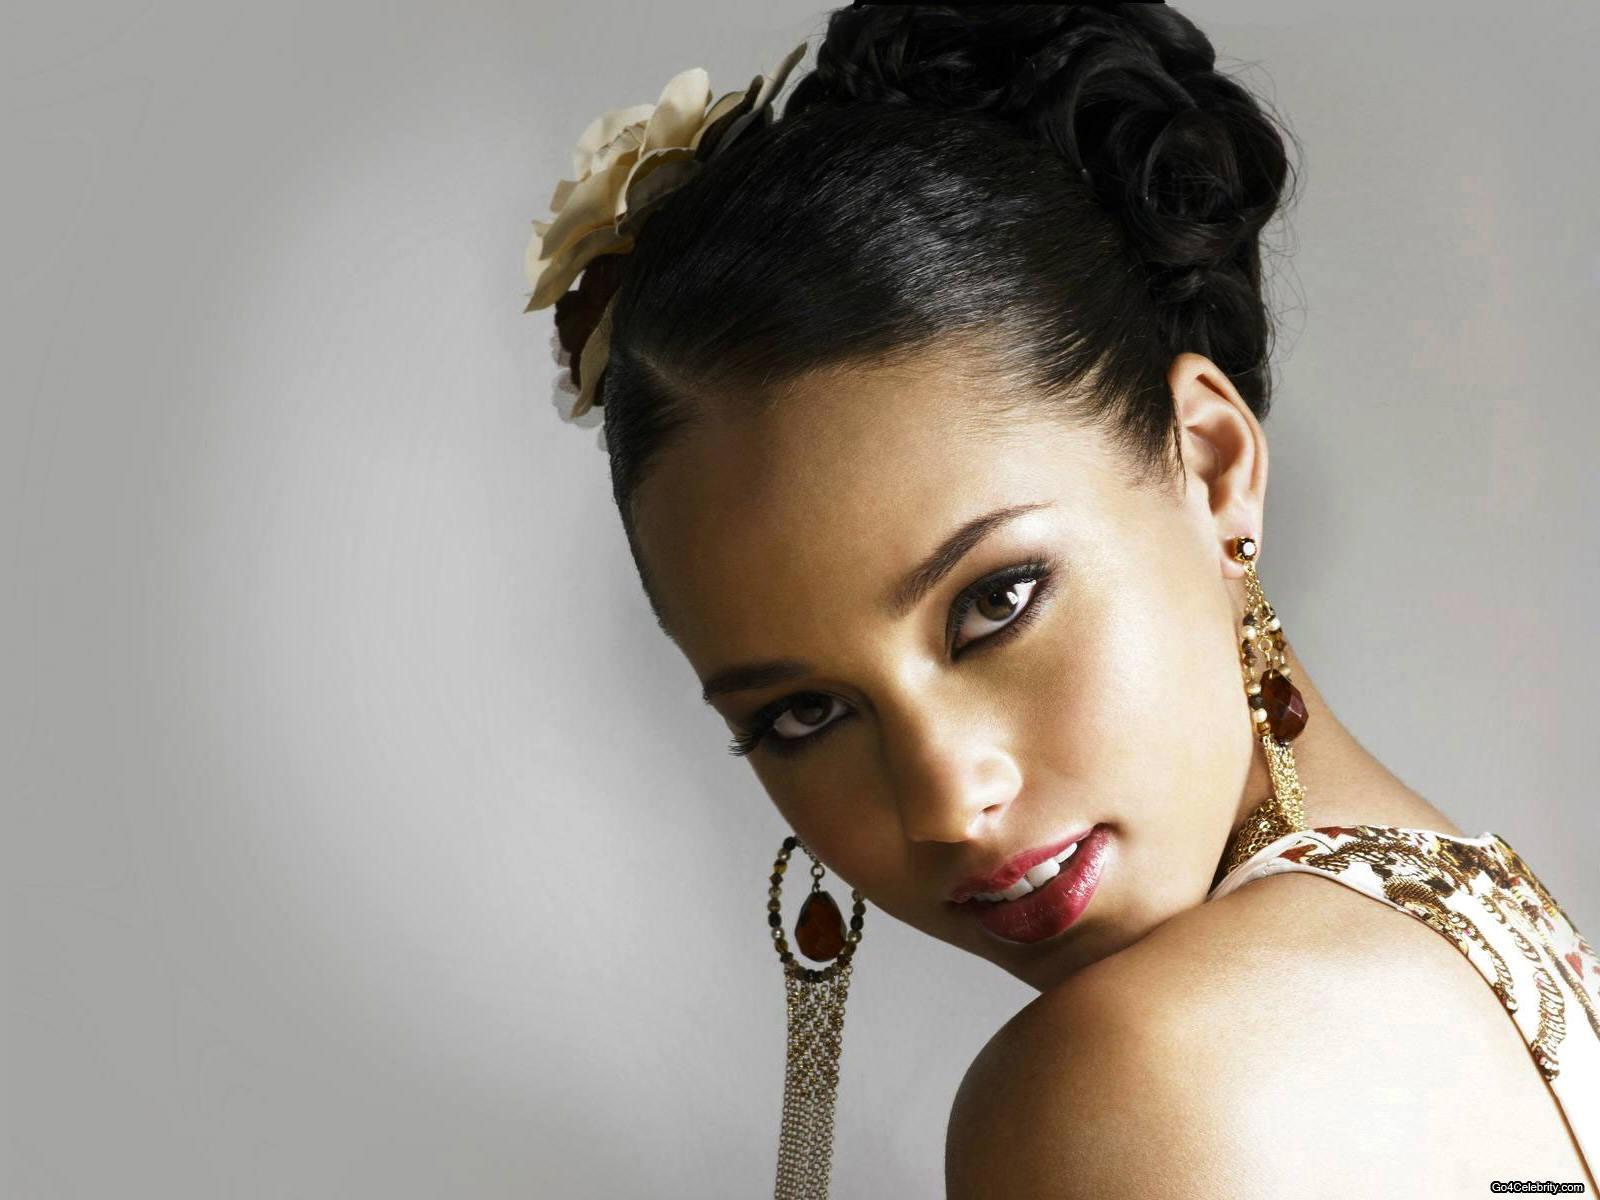 HD Wallpapers: Alicia Keys Wallpapers